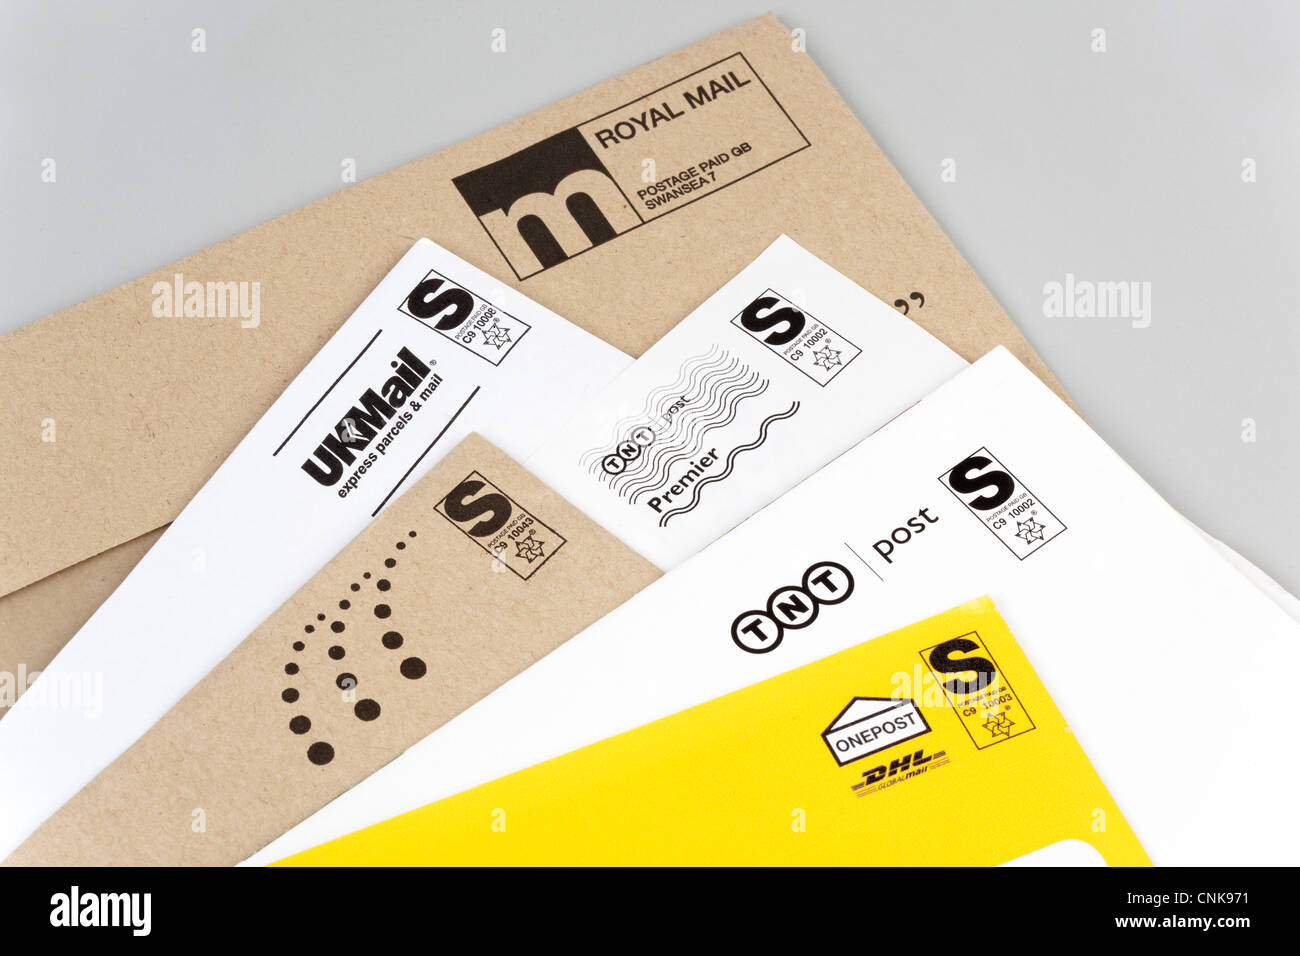 letters delivered by various postal delivery companies Stock Photo